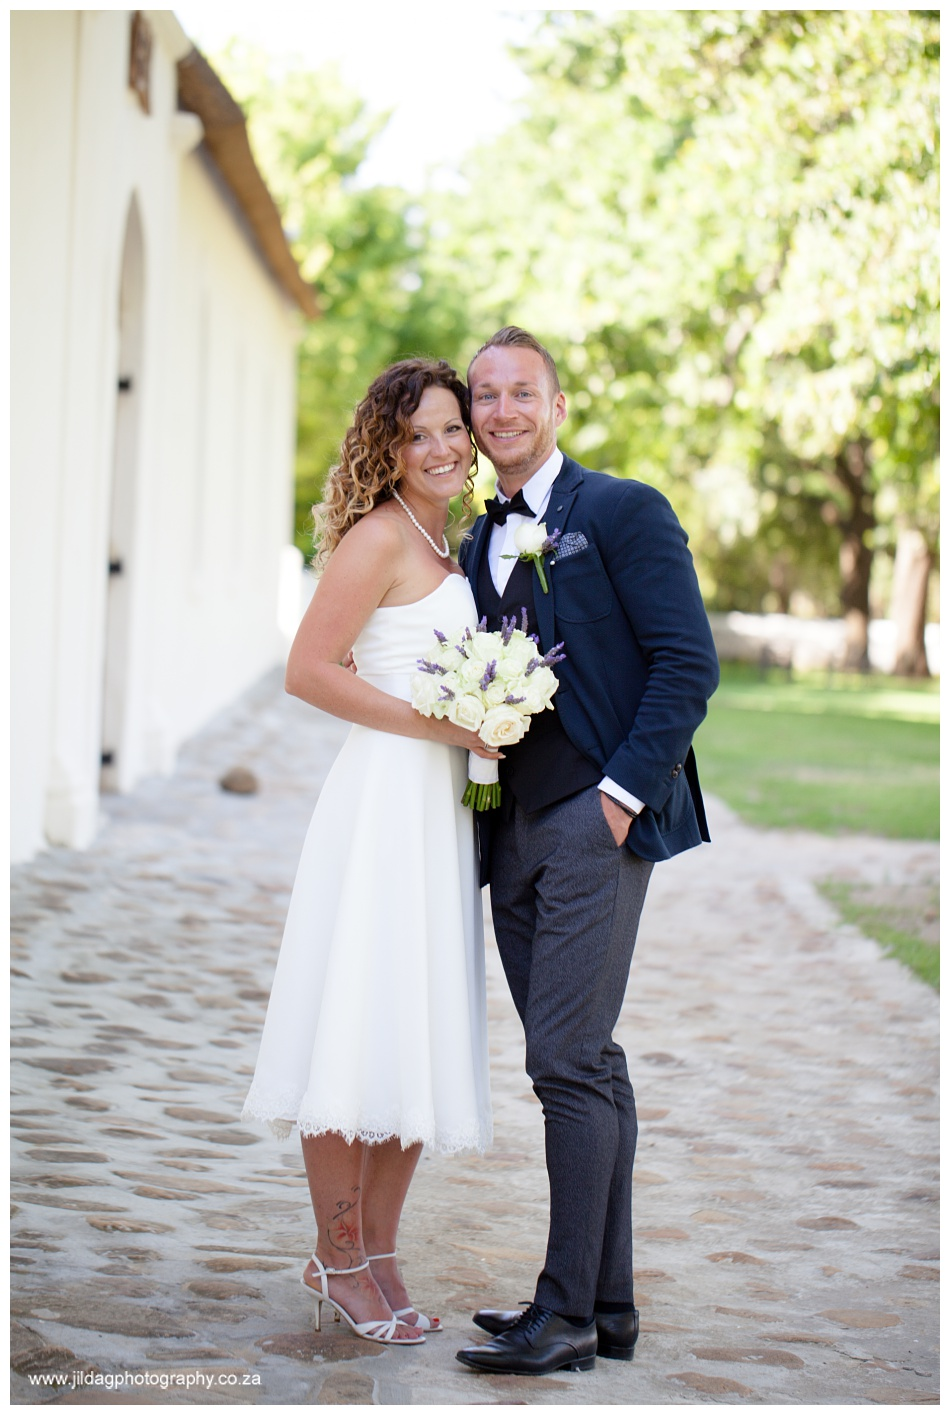 Jilda-G-Photography-wedding-Boschendal_0541